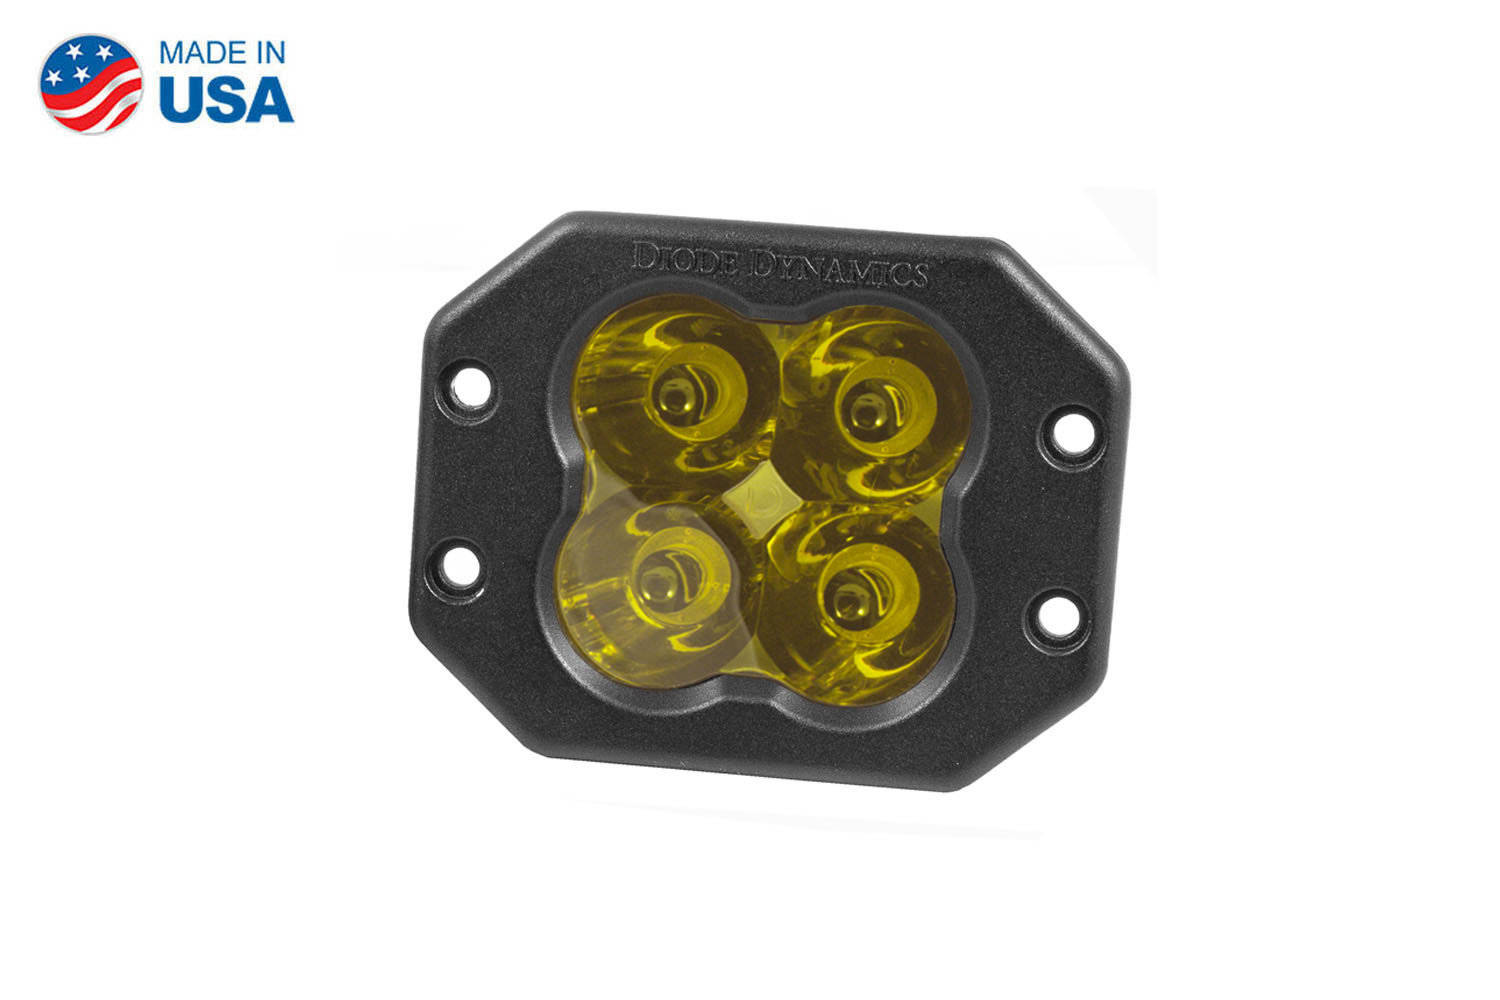 Diode Dynamics Worklight SS3 Pro Yellow Spot Flush (single)